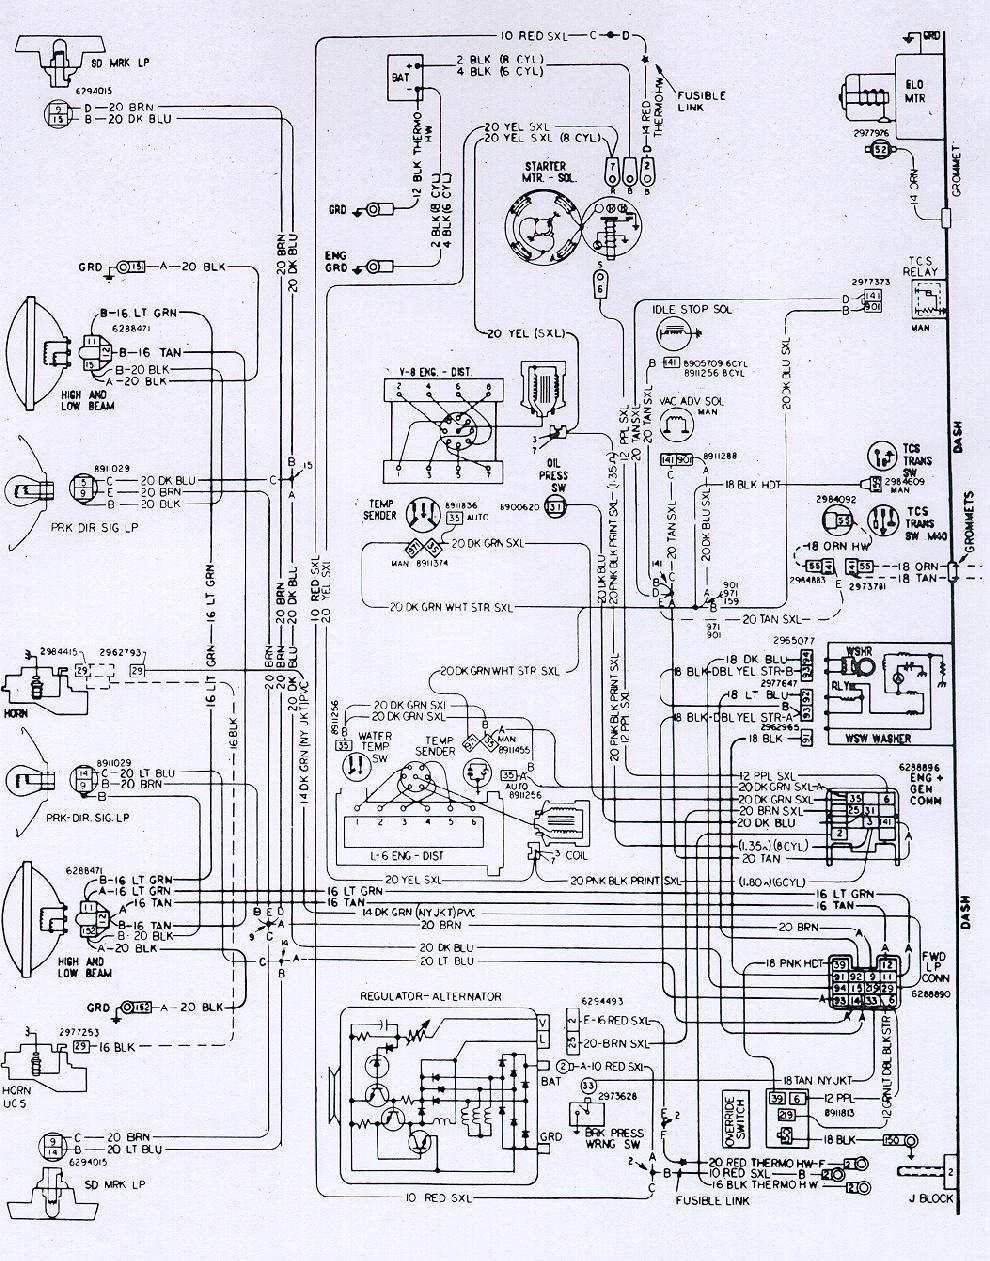 medium resolution of 1968 camaro tic toc tach wiring diagram best wiring library1968 camaro tic toc tach wiring diagram